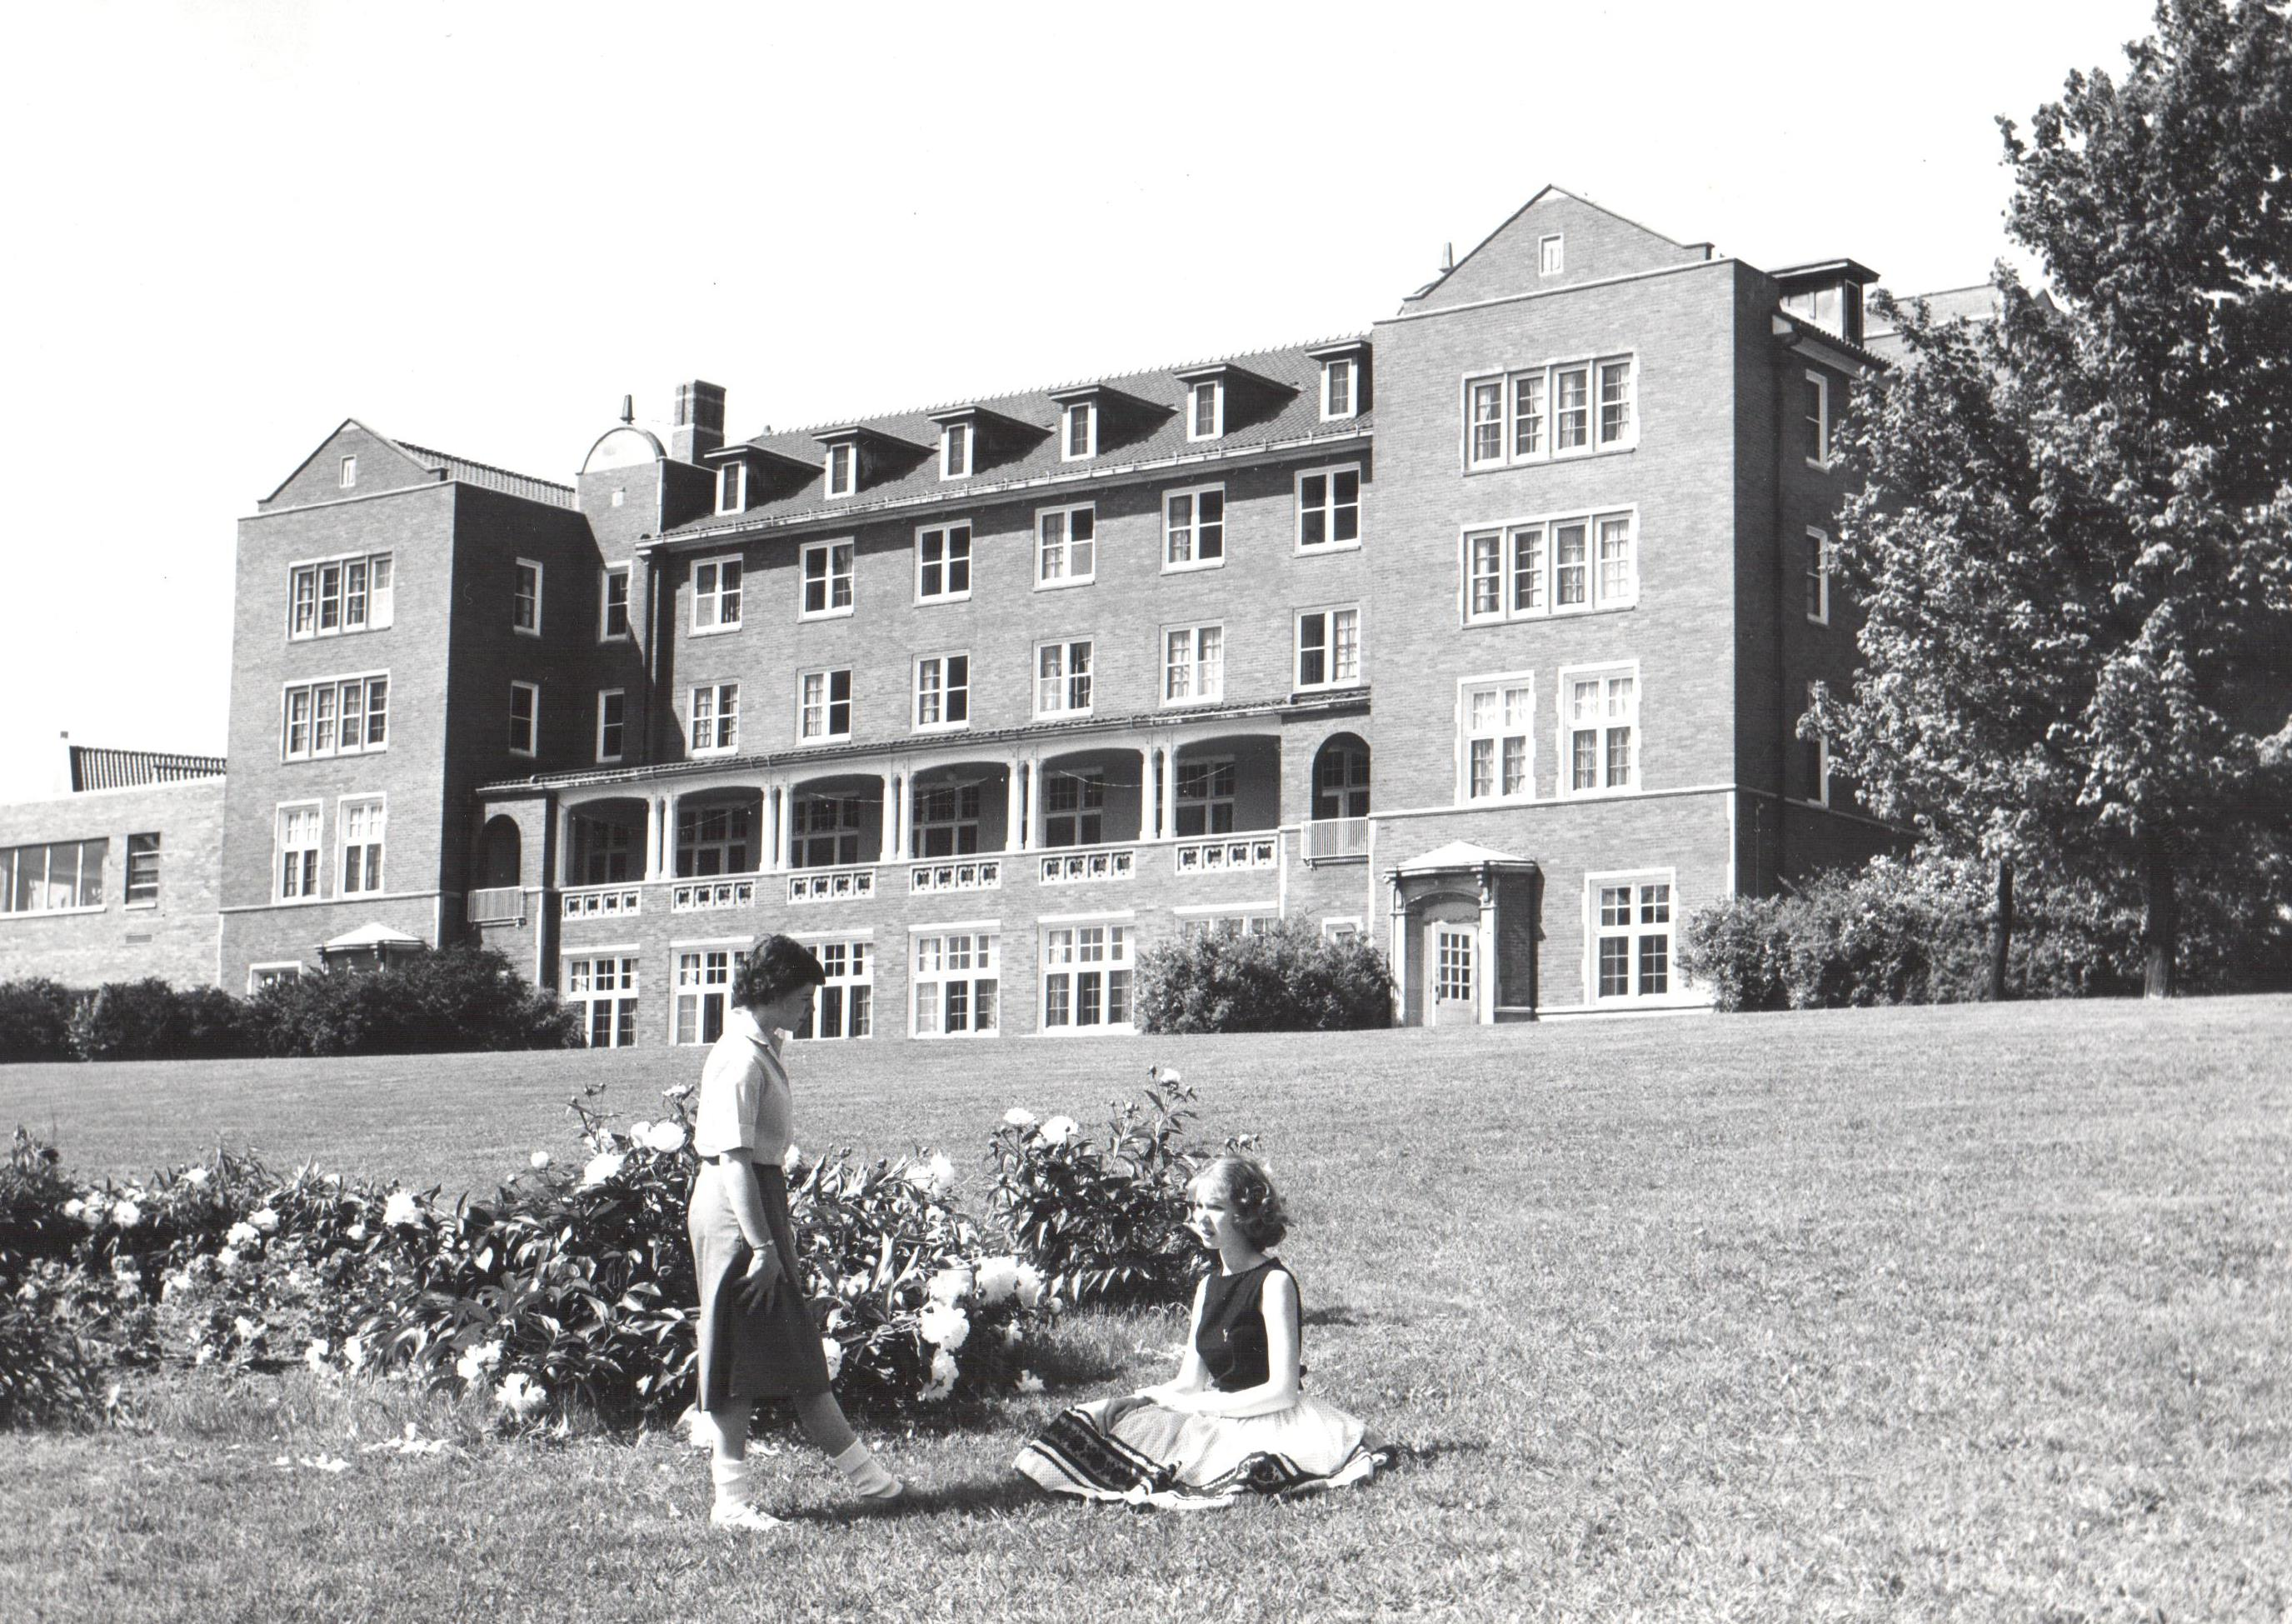 Muskingum College students enjoying themselves as they sit in the lawn in front of Patton Hall